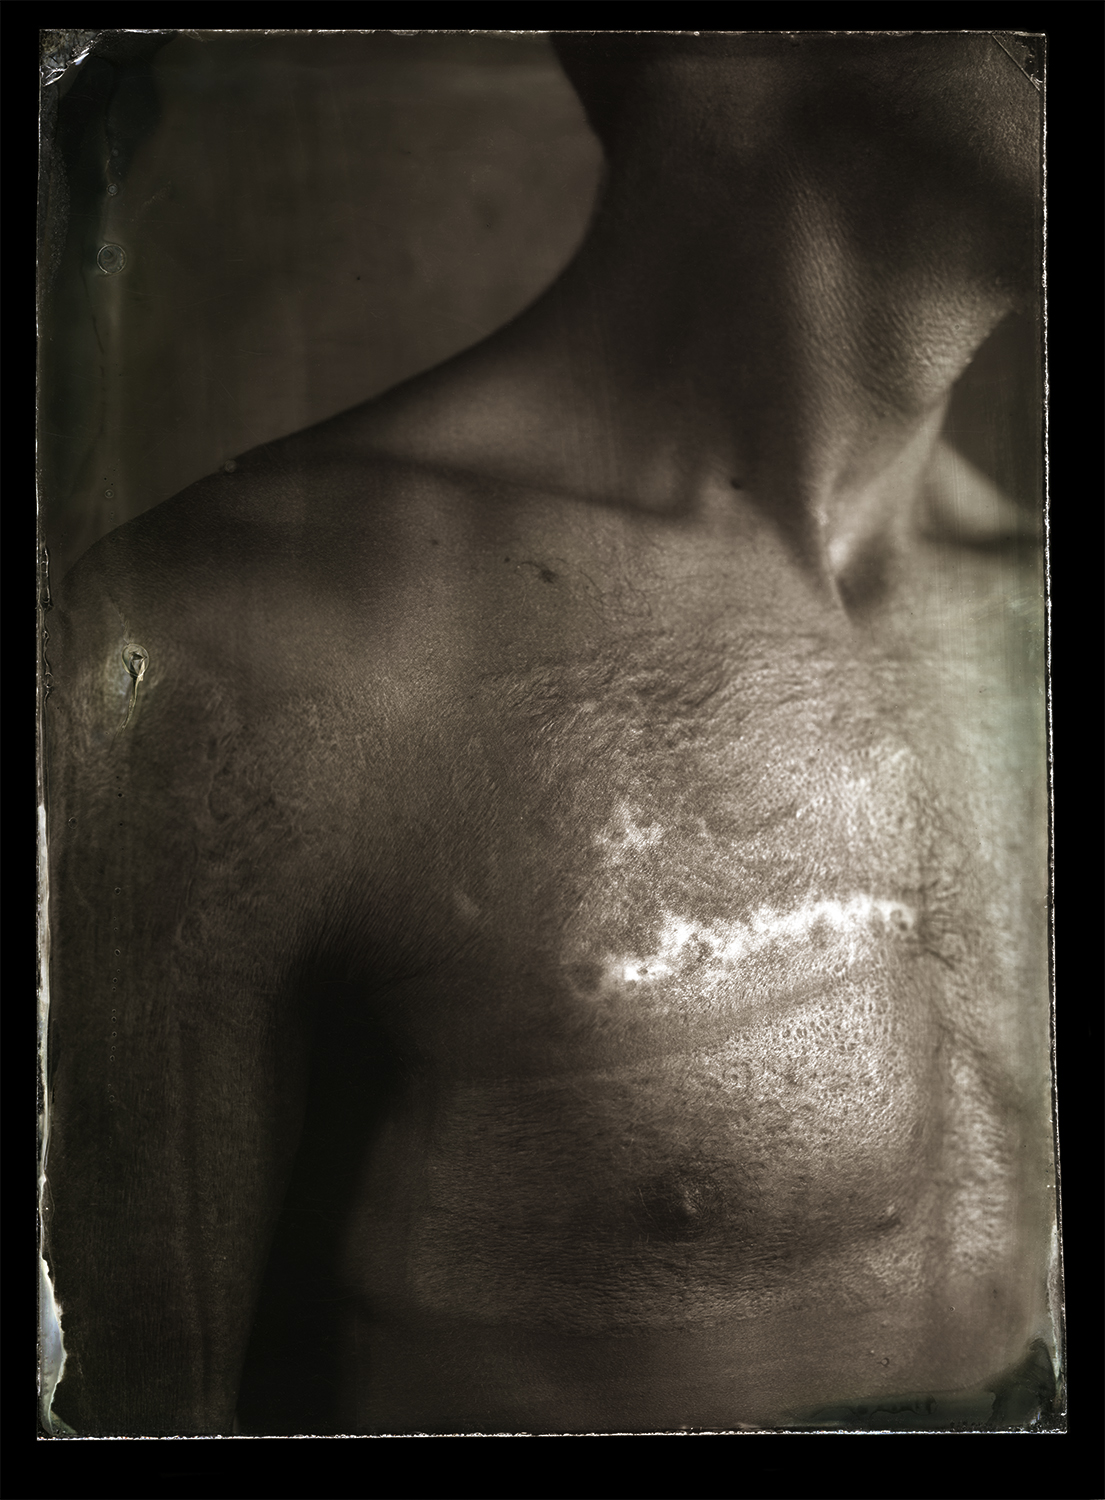 Burn-scarred chest (Pic: Clement Marion)